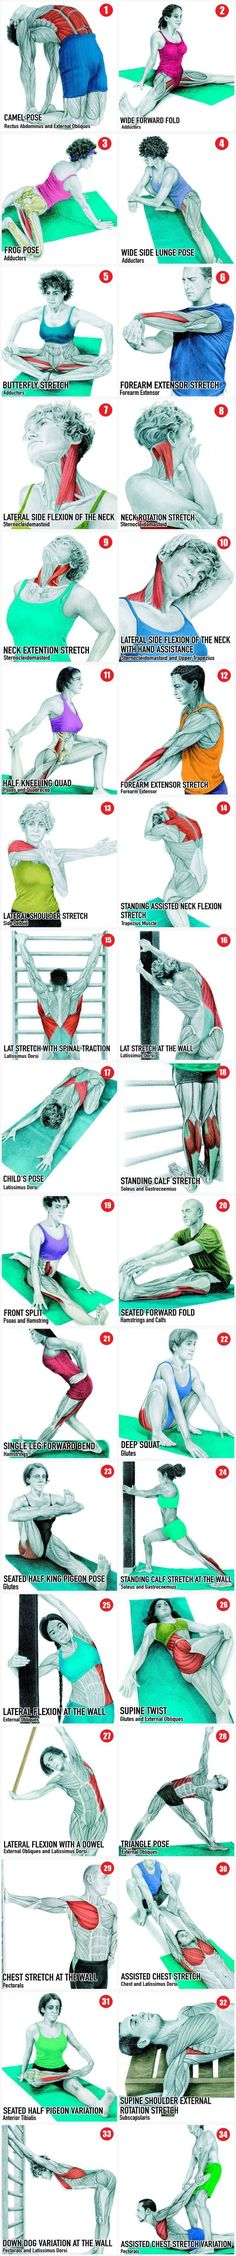 Stretches for specific muscles!